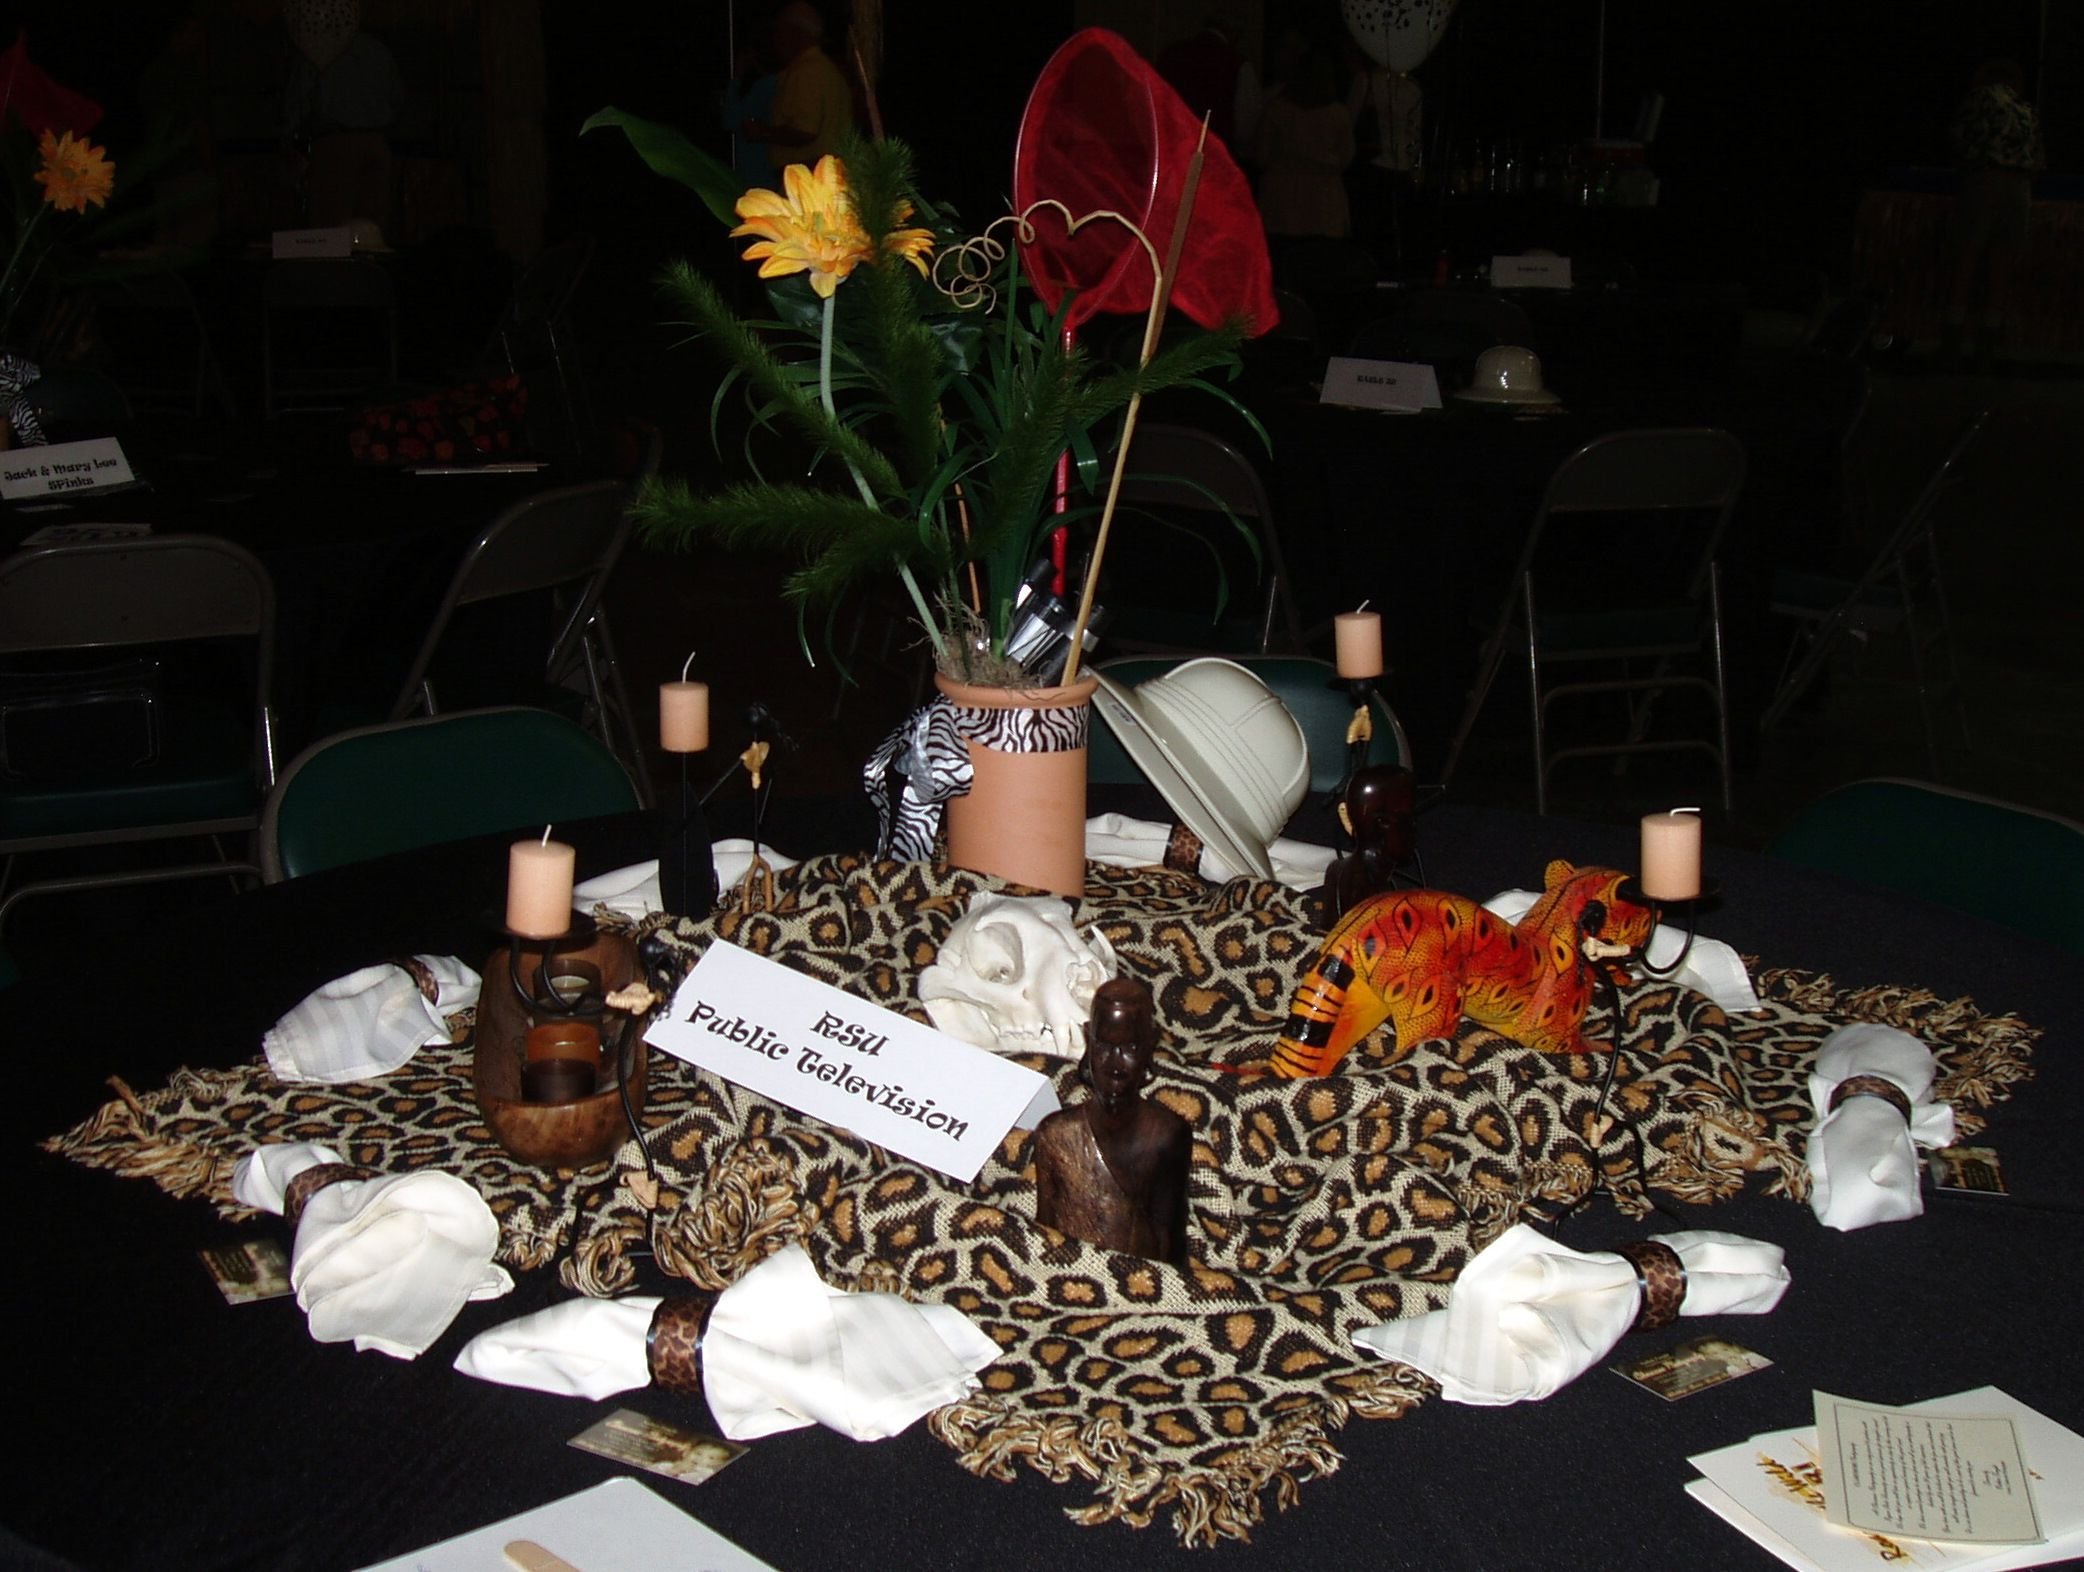 Adult birthday table decorations - Adult Jungle Party Ideas Leopard Cheetah Print Table Centerpiece Decorations